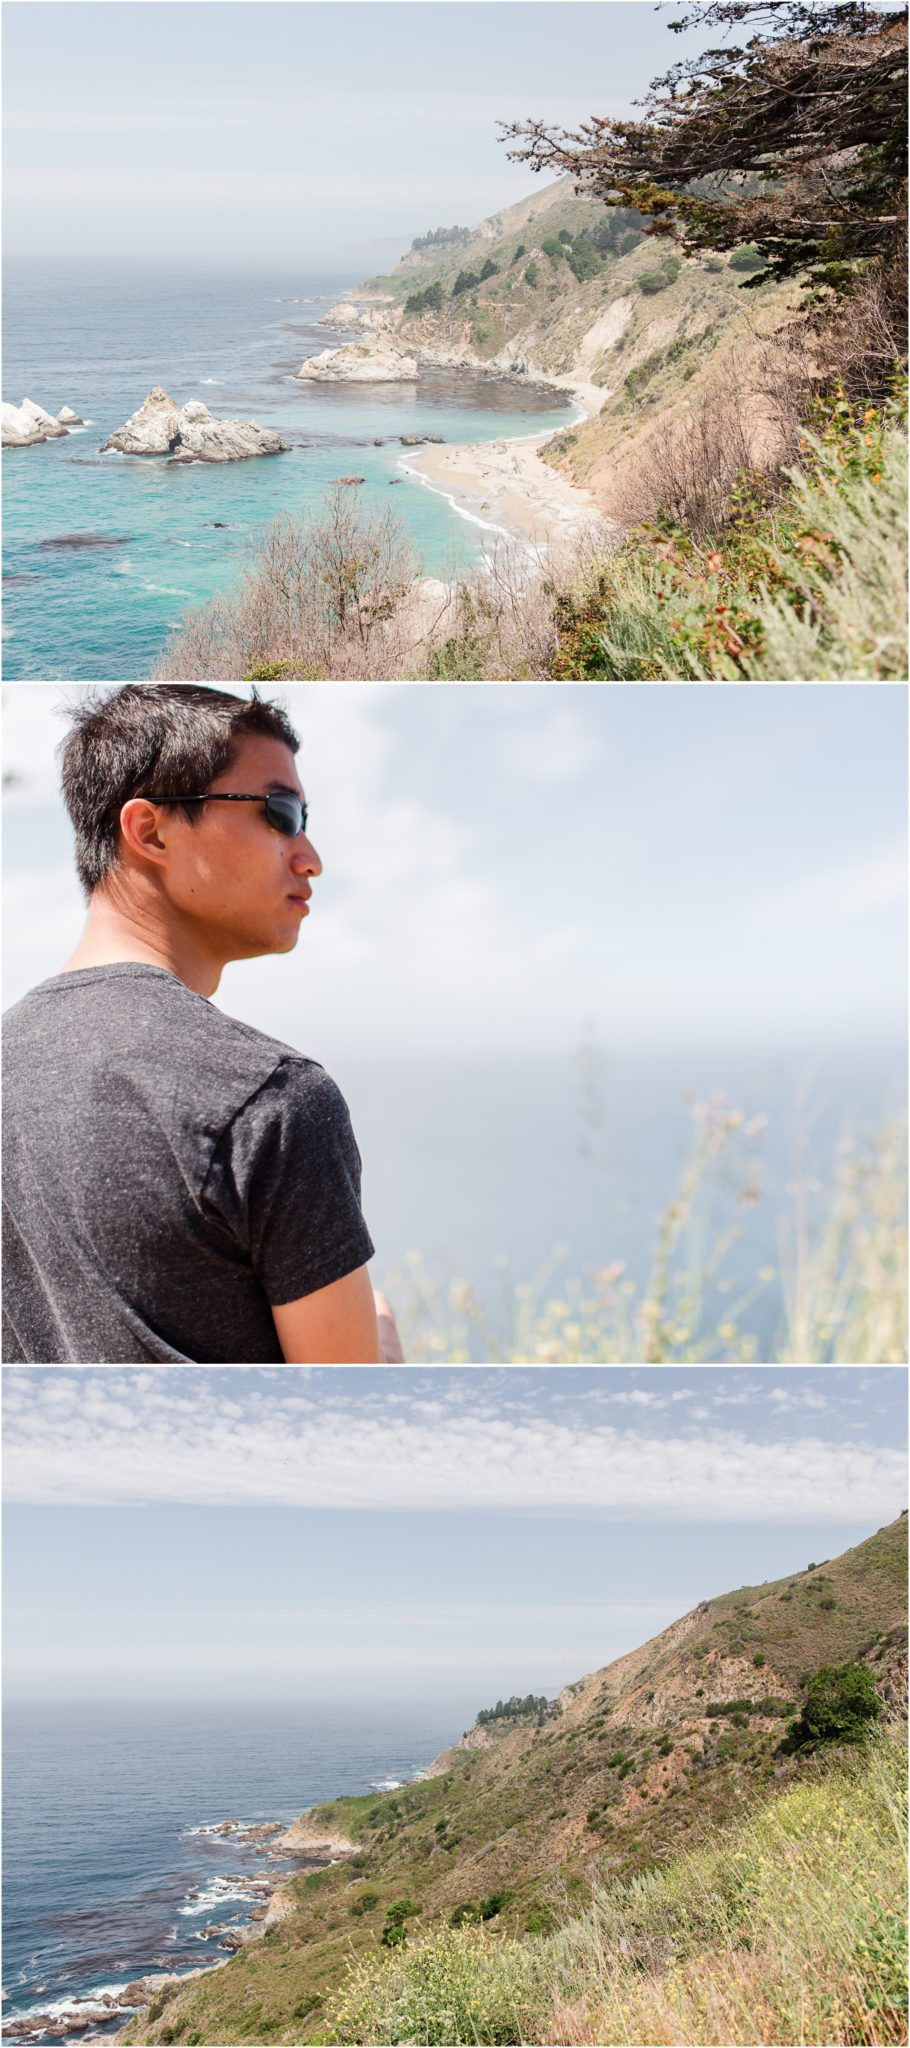 California Highway 1 Lookout Points